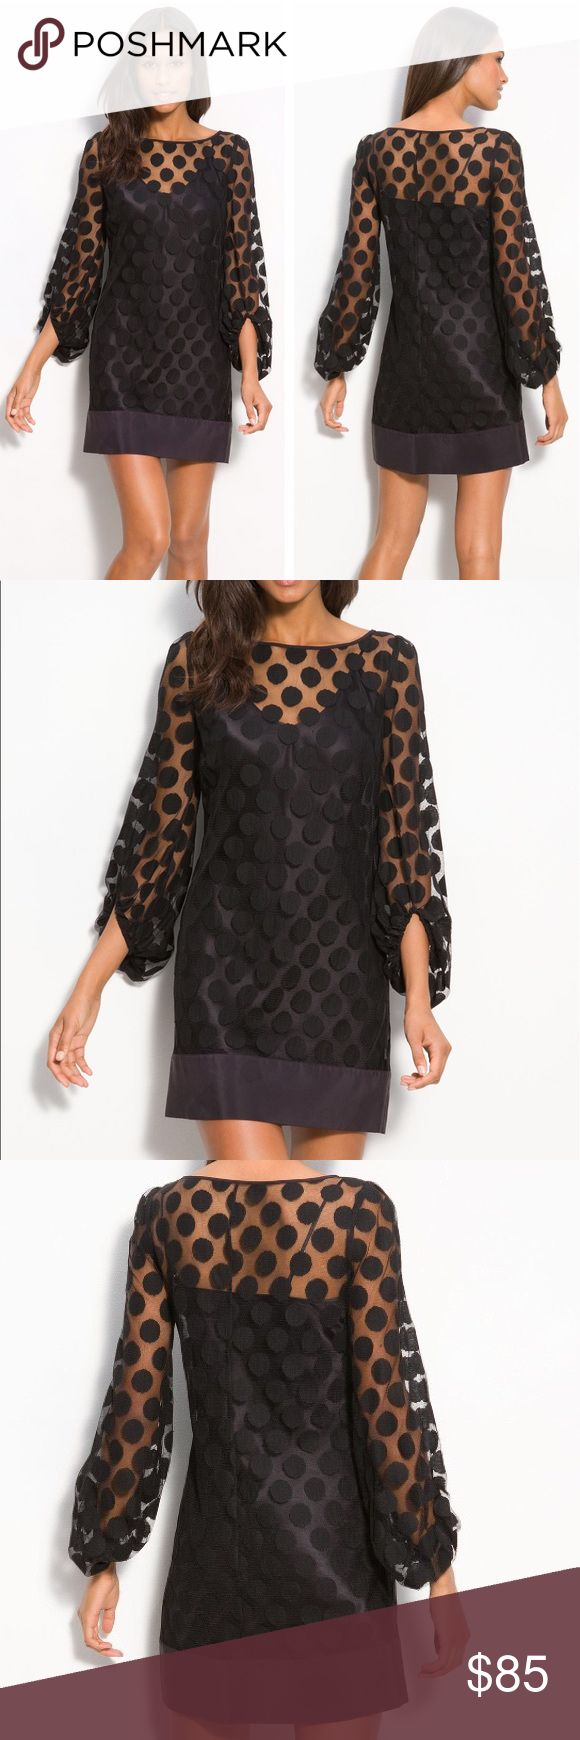 Laundry by Shelli Segal • Polka dot shift dress Laundry by Shelli Segal polka dot lace shift dress. Black. 3/4 sleeve. Size 2. Perfect like new condition. Retail $130. Sold out online! Laundry by Shelli Segal Dresses Mini